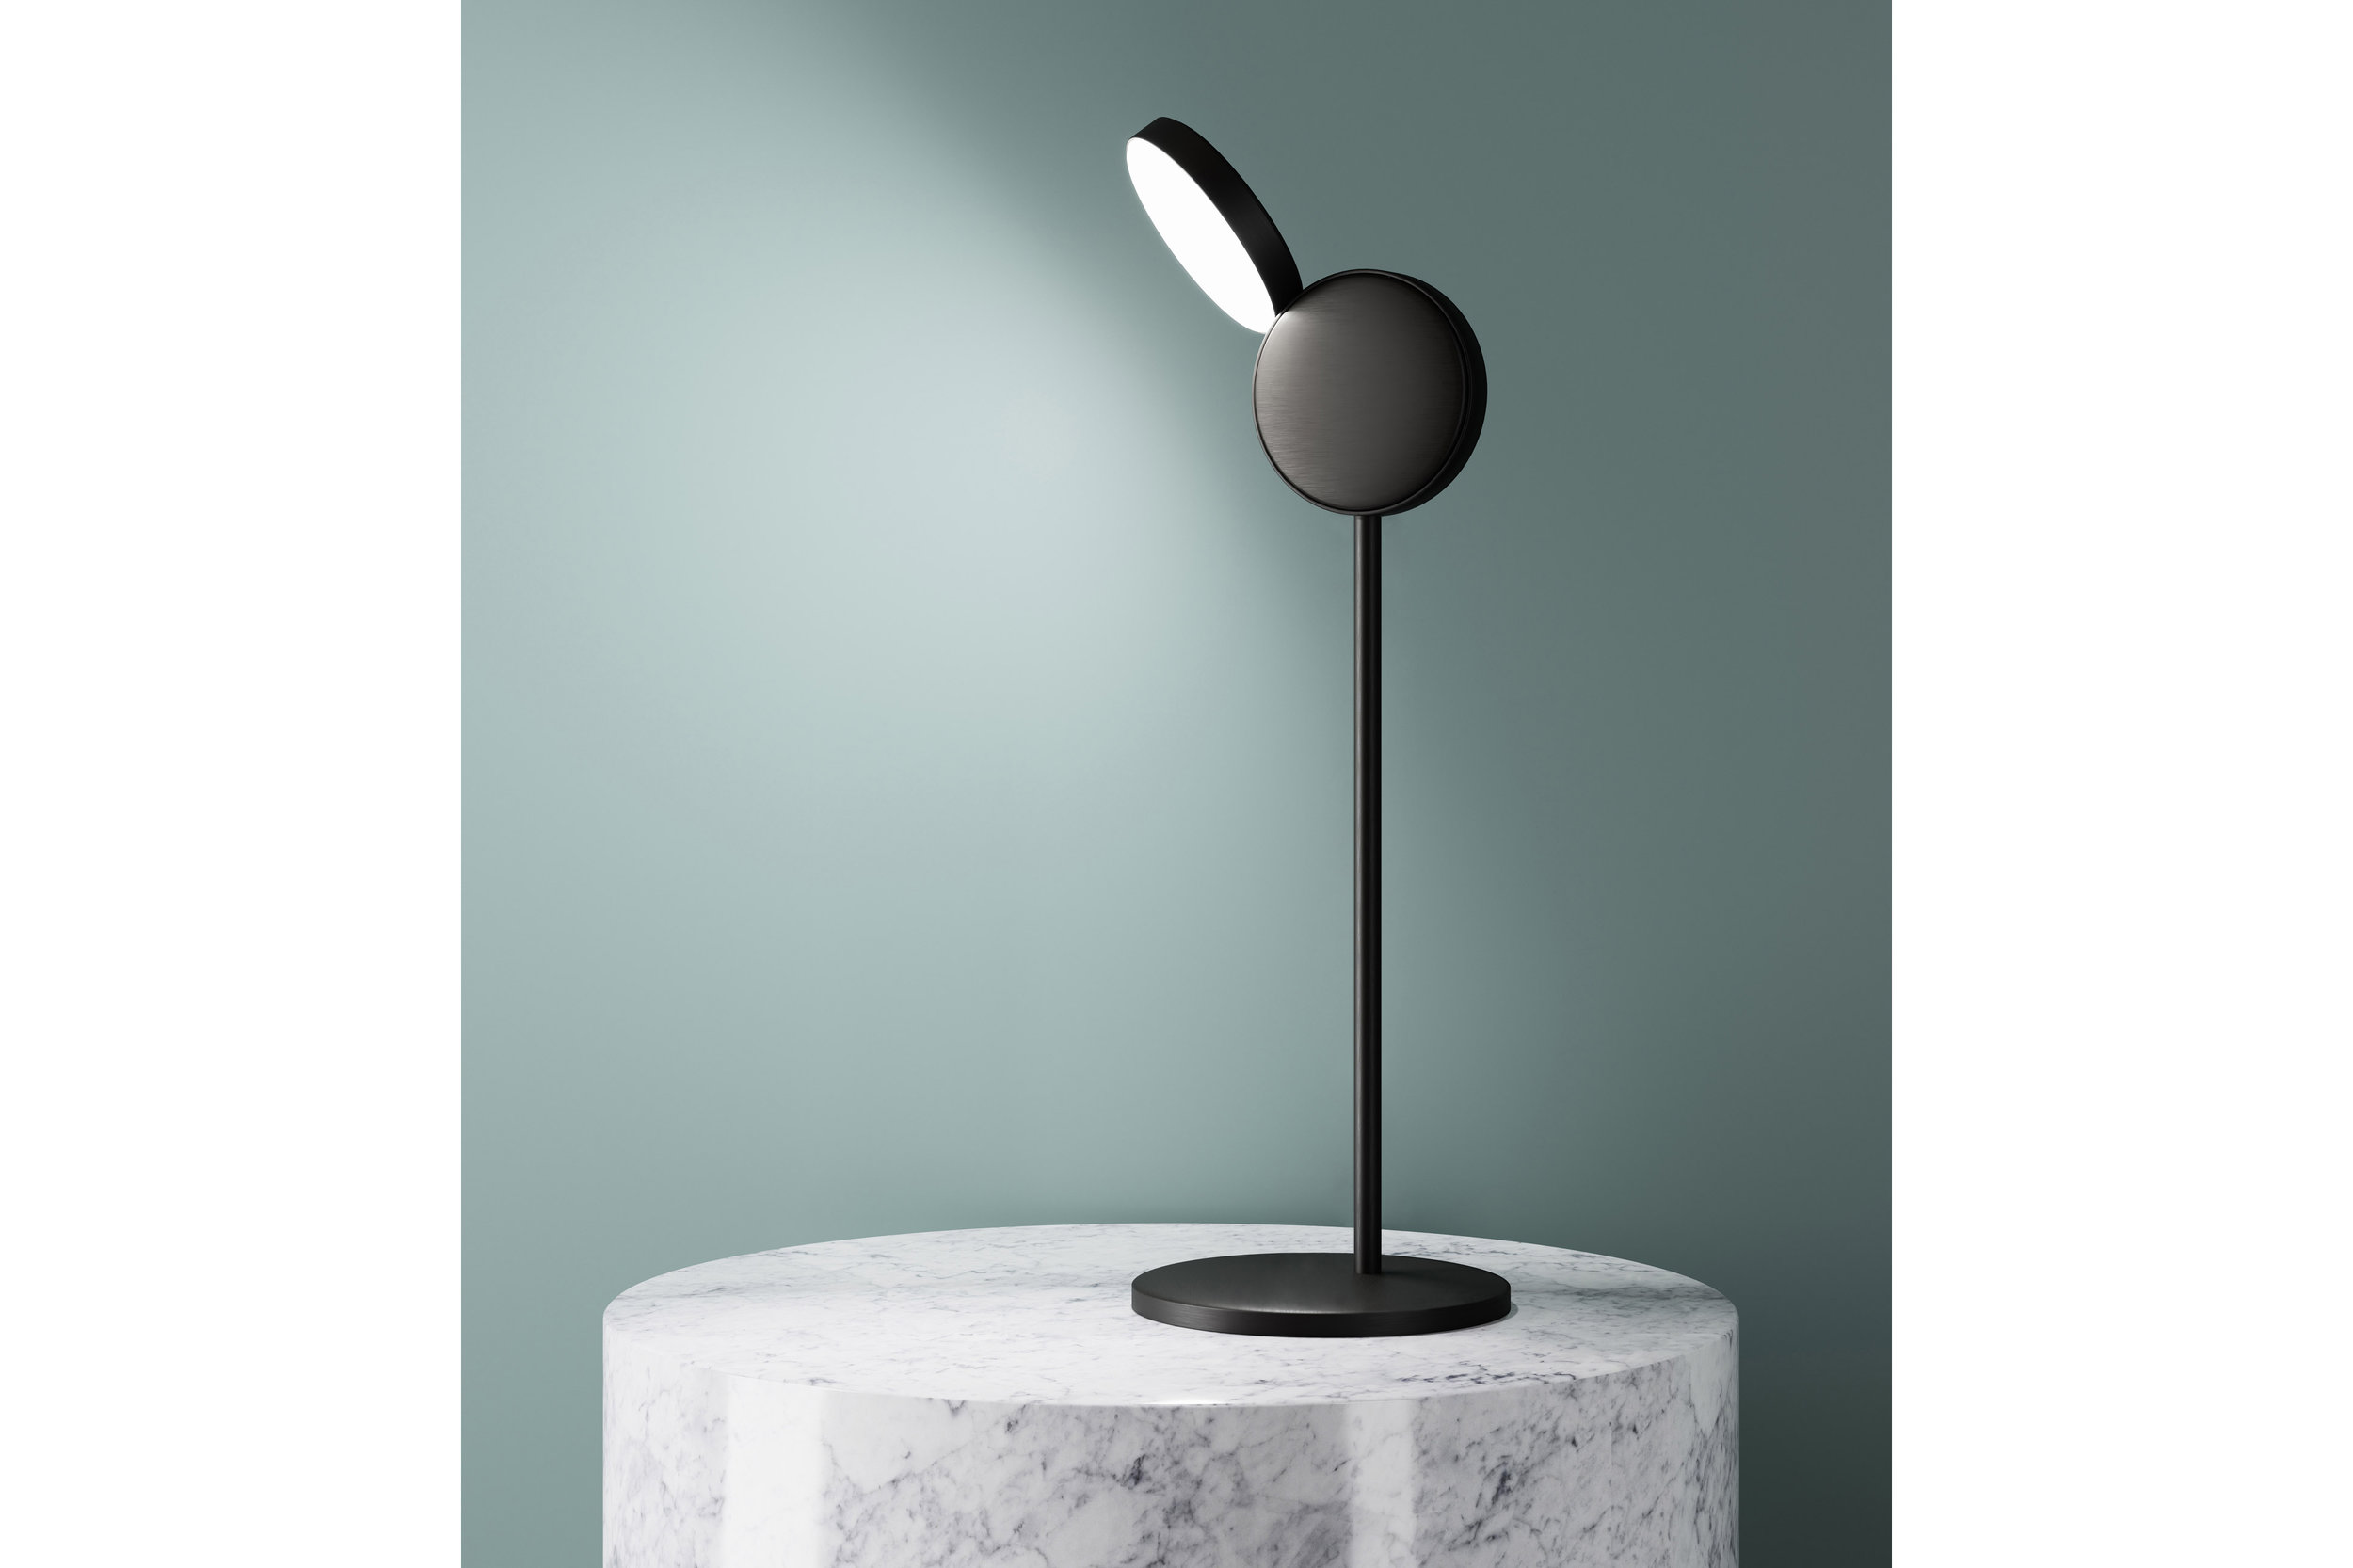 optunia-lamp-collection-klaesson-coivisto-rune-fontana-arte-lighting-milan-2017_dezeen_2364_col_4.jpg